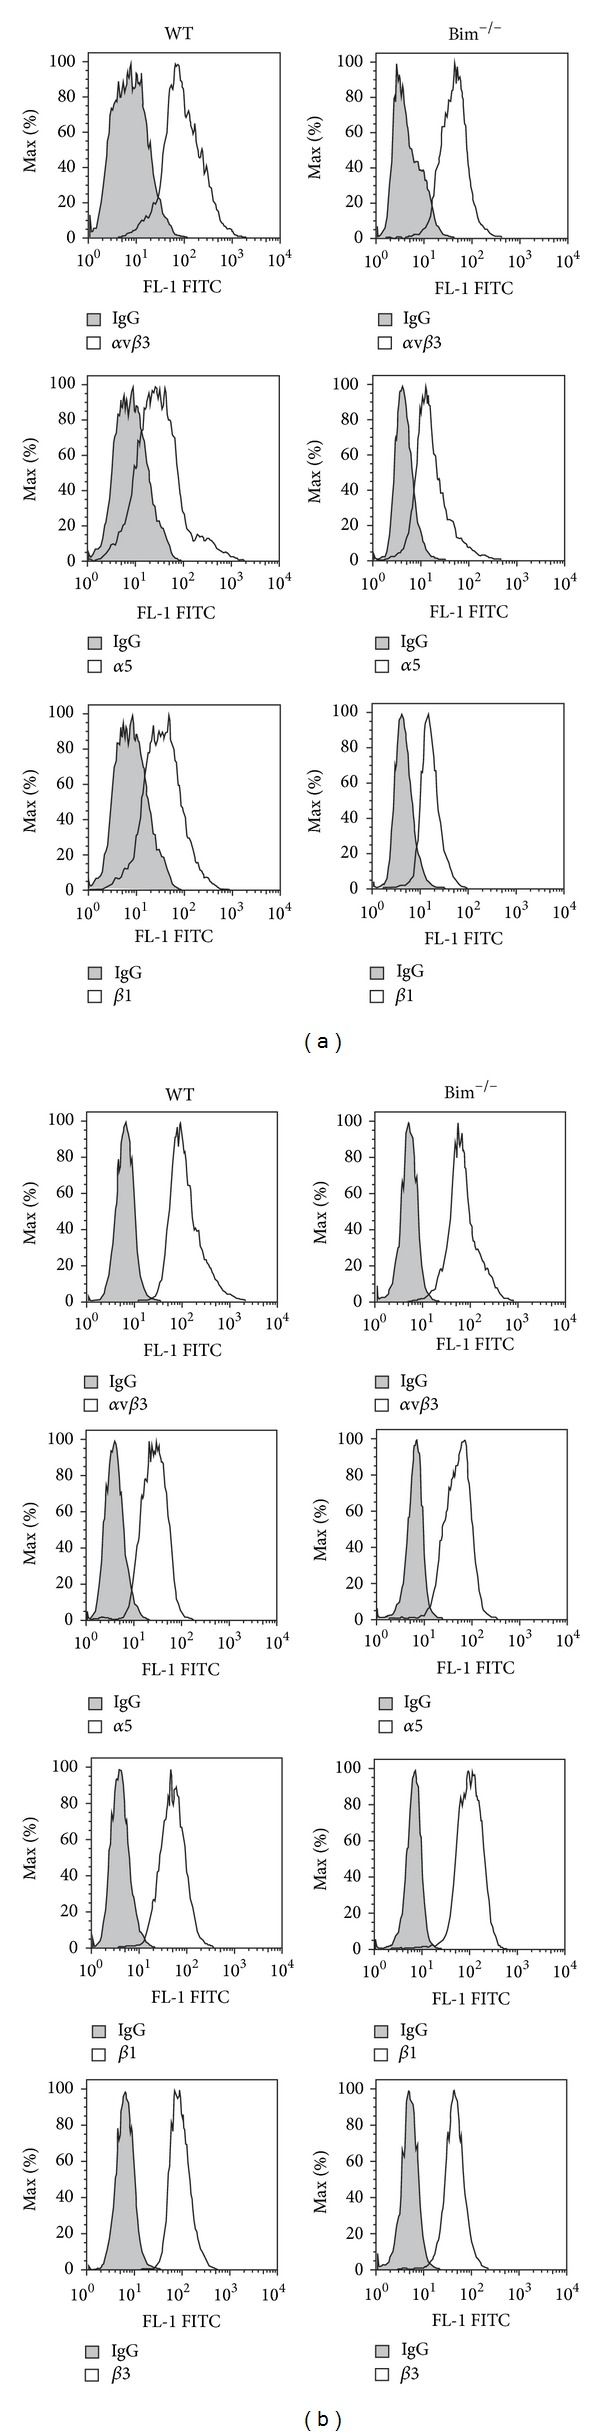 Wild-type and Bim −/− retinal vascular cells had similar integrin expression. Expression of various integrins was determined in wild-type and Bim −/− endothelial cells (panel (a)) and pericytes (panel (b)) using FACScan analysis as described in Section 5 . The shaded graphs show staining in the presence of control IgG. These experiments were repeated twice with similar results.